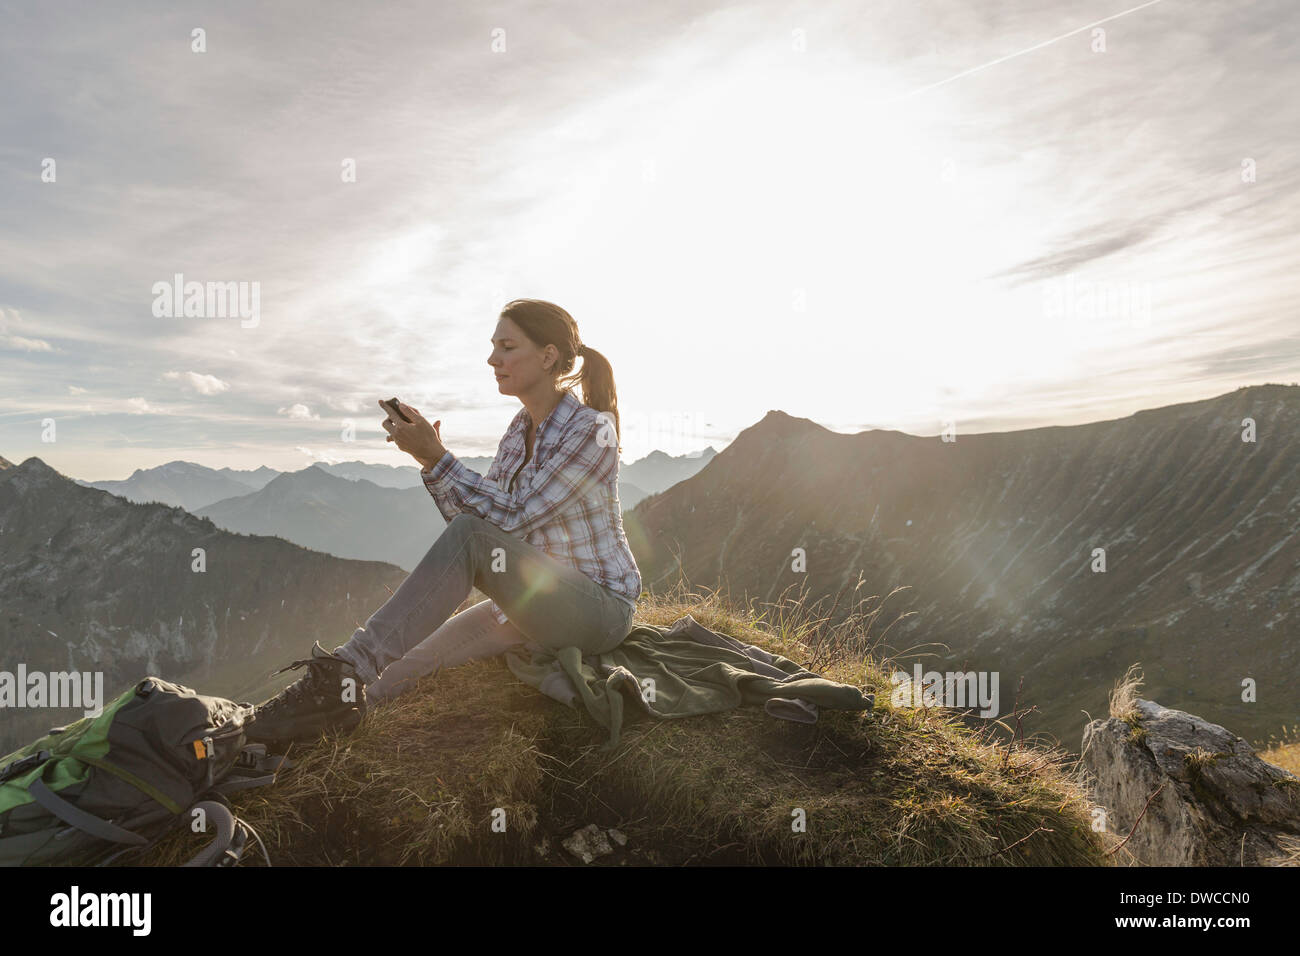 Portrait of a mid adult woman backpacker using smartphone, Achensee, Tyrol, Austria - Stock Image